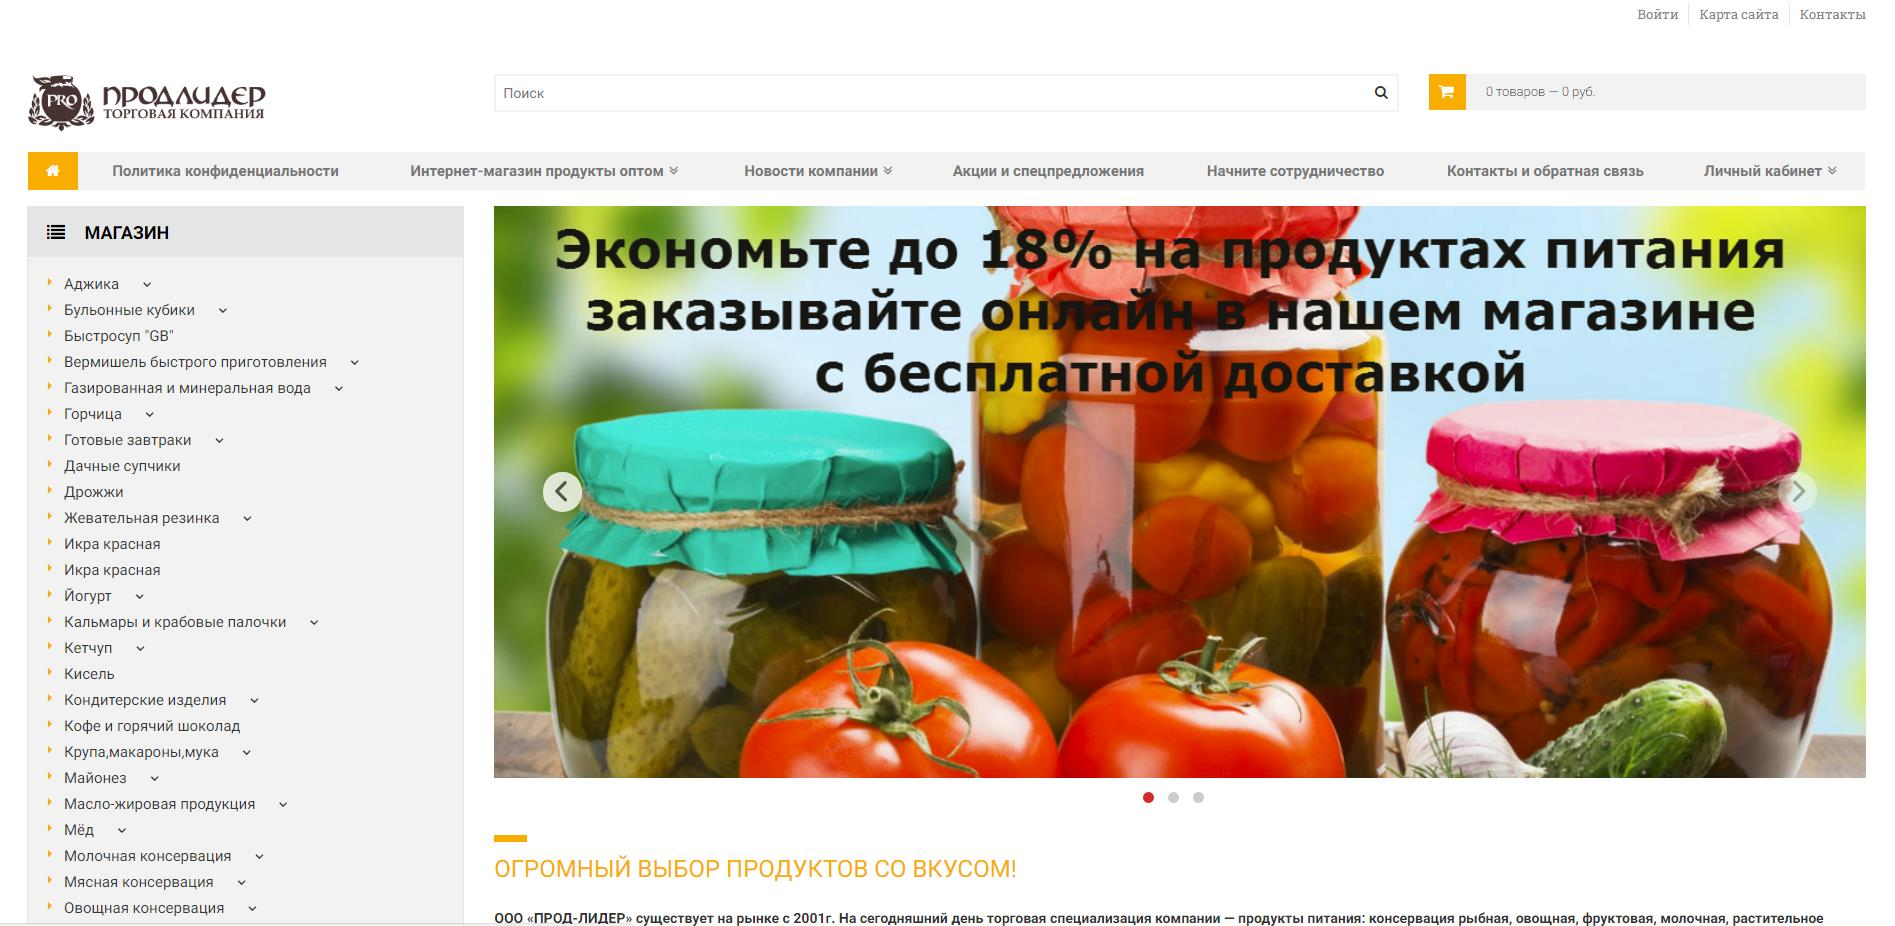 Рекламная кампания Google.AdWords для сайта kupiproduct.ru